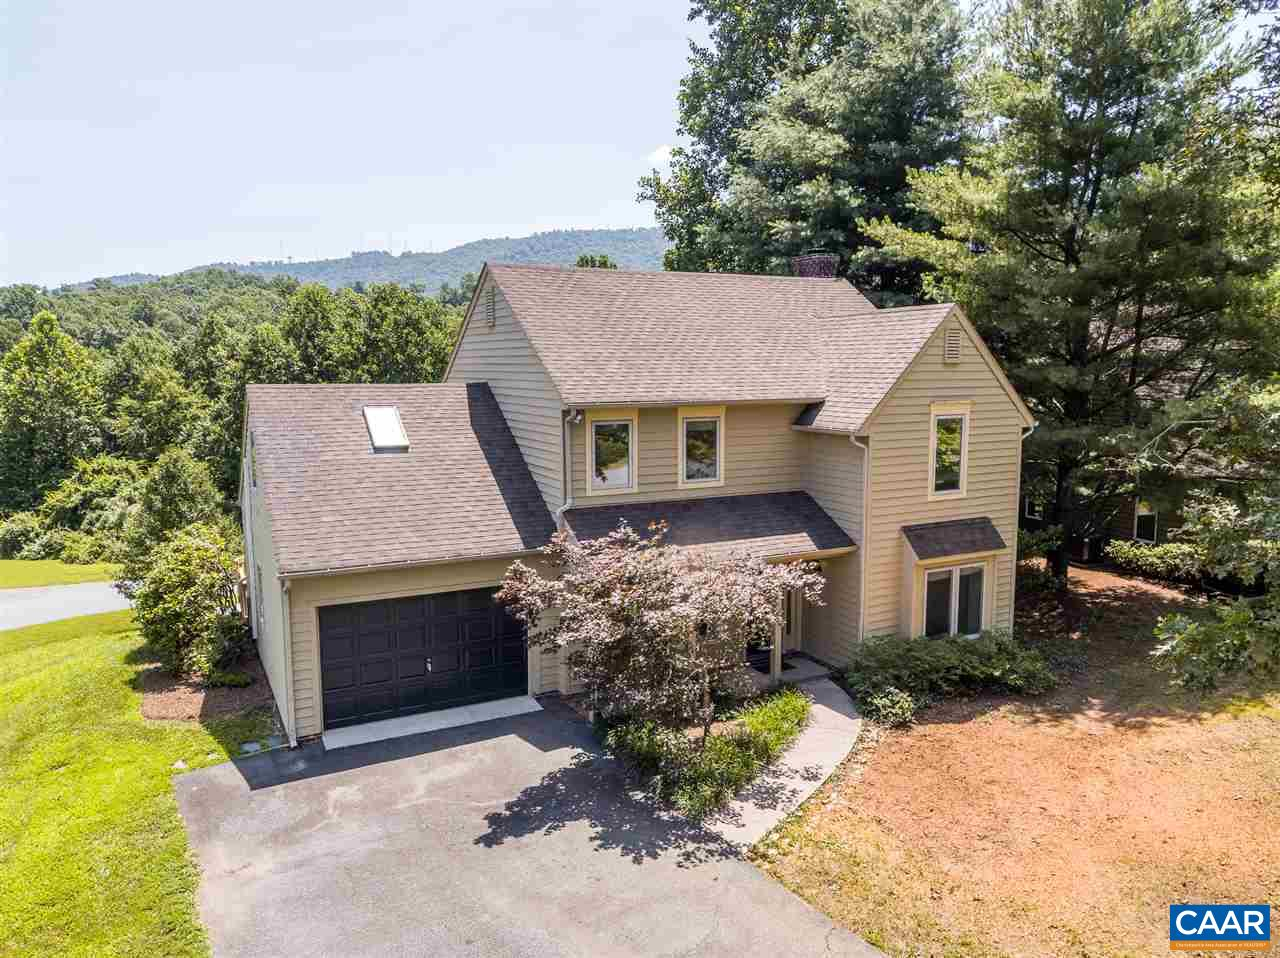 MILL CREEK SOUTH - MOVE-IN READY - LEVEL DRIVEWAY/ 'NO-STEPS' HOUSE ACCESS - CUL-DE-SAC STREET - WOODED VIEWS/SEASONAL CARTER'S MOUNTAIN VIEWS. 3 Bedroom, 2-1/2 Bath -  '93 Craig-built home w/ oversize 1-car garage & attic storage. Living room / dining room / family room w/wood burning fireplace. Owner's suite w/large flex space (office/study/crafts). Freshly painted interior. Relax-Entertain: 12' x 16' screened porch + 2 large decks (near ground level). NEW HVAC systems & NEW Water Heater. Casement windows w/ custom shades & cedar siding.  A HOME WELL WORTH YOUR CONSIDERATION!